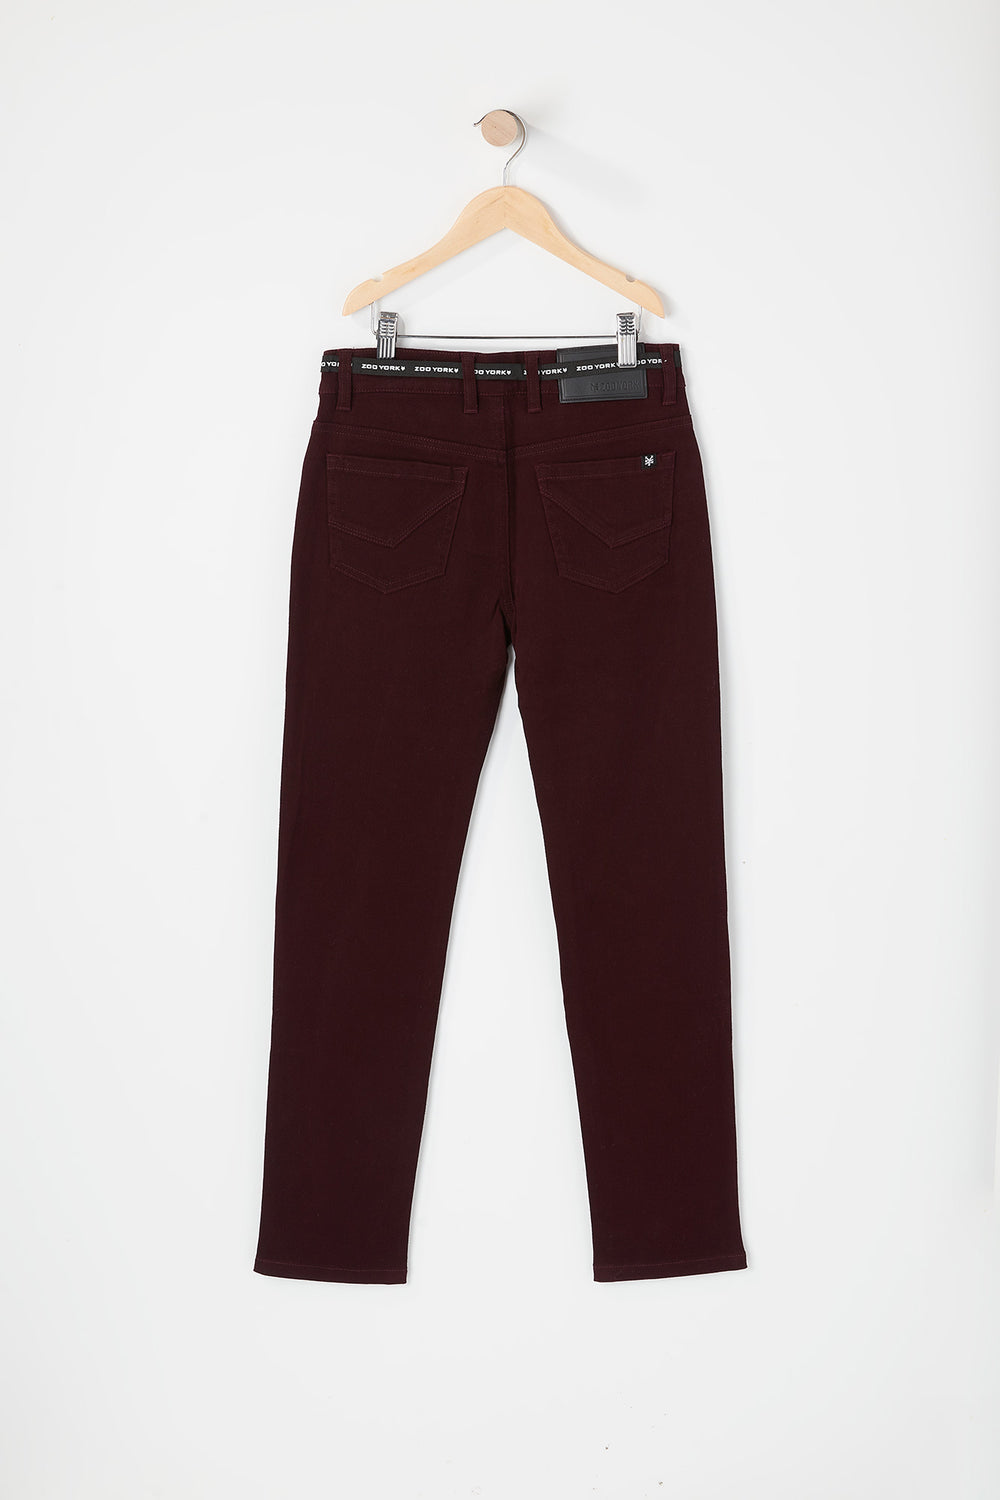 Zoo York Youth Skinny Jeans Burgundy